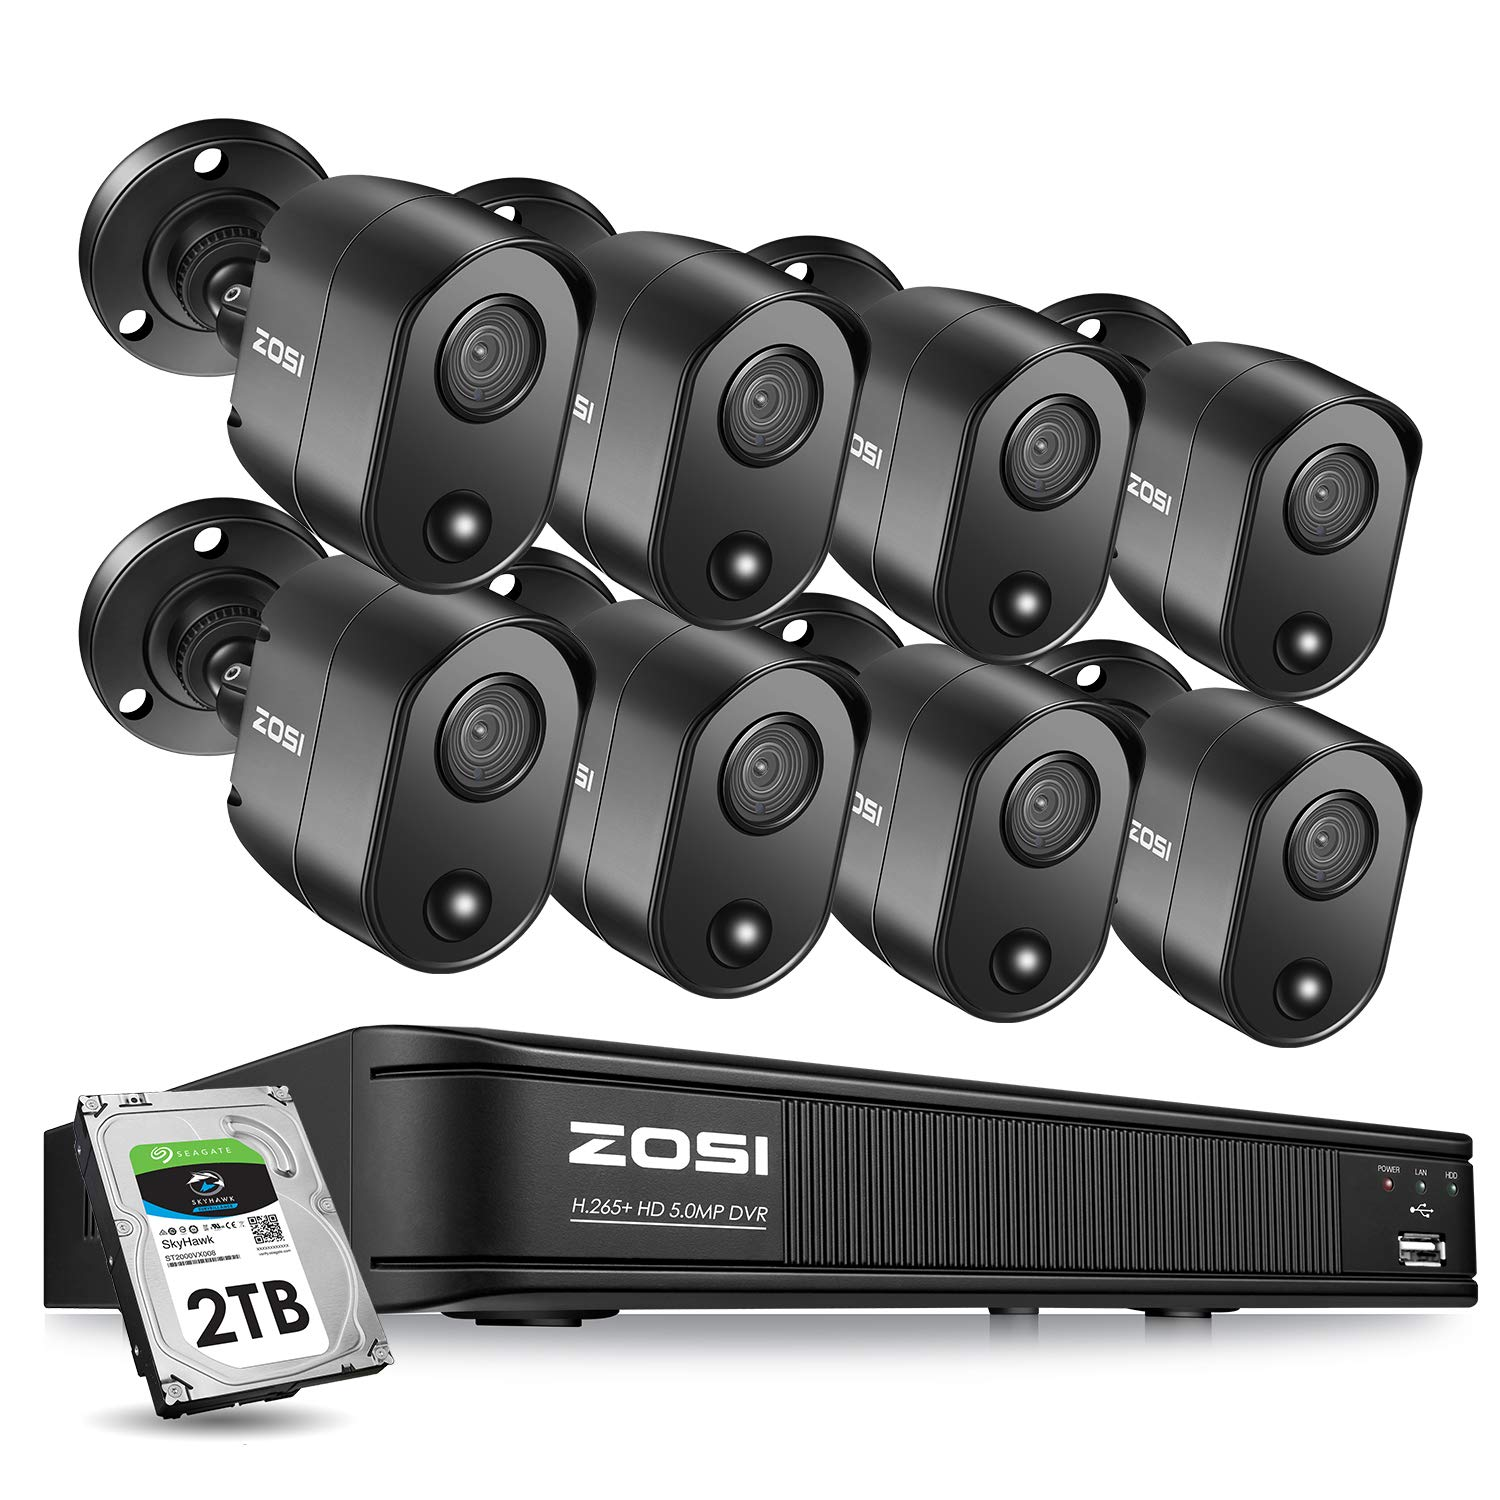 ZOSI 5MP 8 Channel Security Camera System for Home, H.265 CCTV DVR with Hard Drive 2TB and 8 x 5MP Surveillance Bullet Camera Outdoor Indoor with PIR Motion Sensor,Remote Access